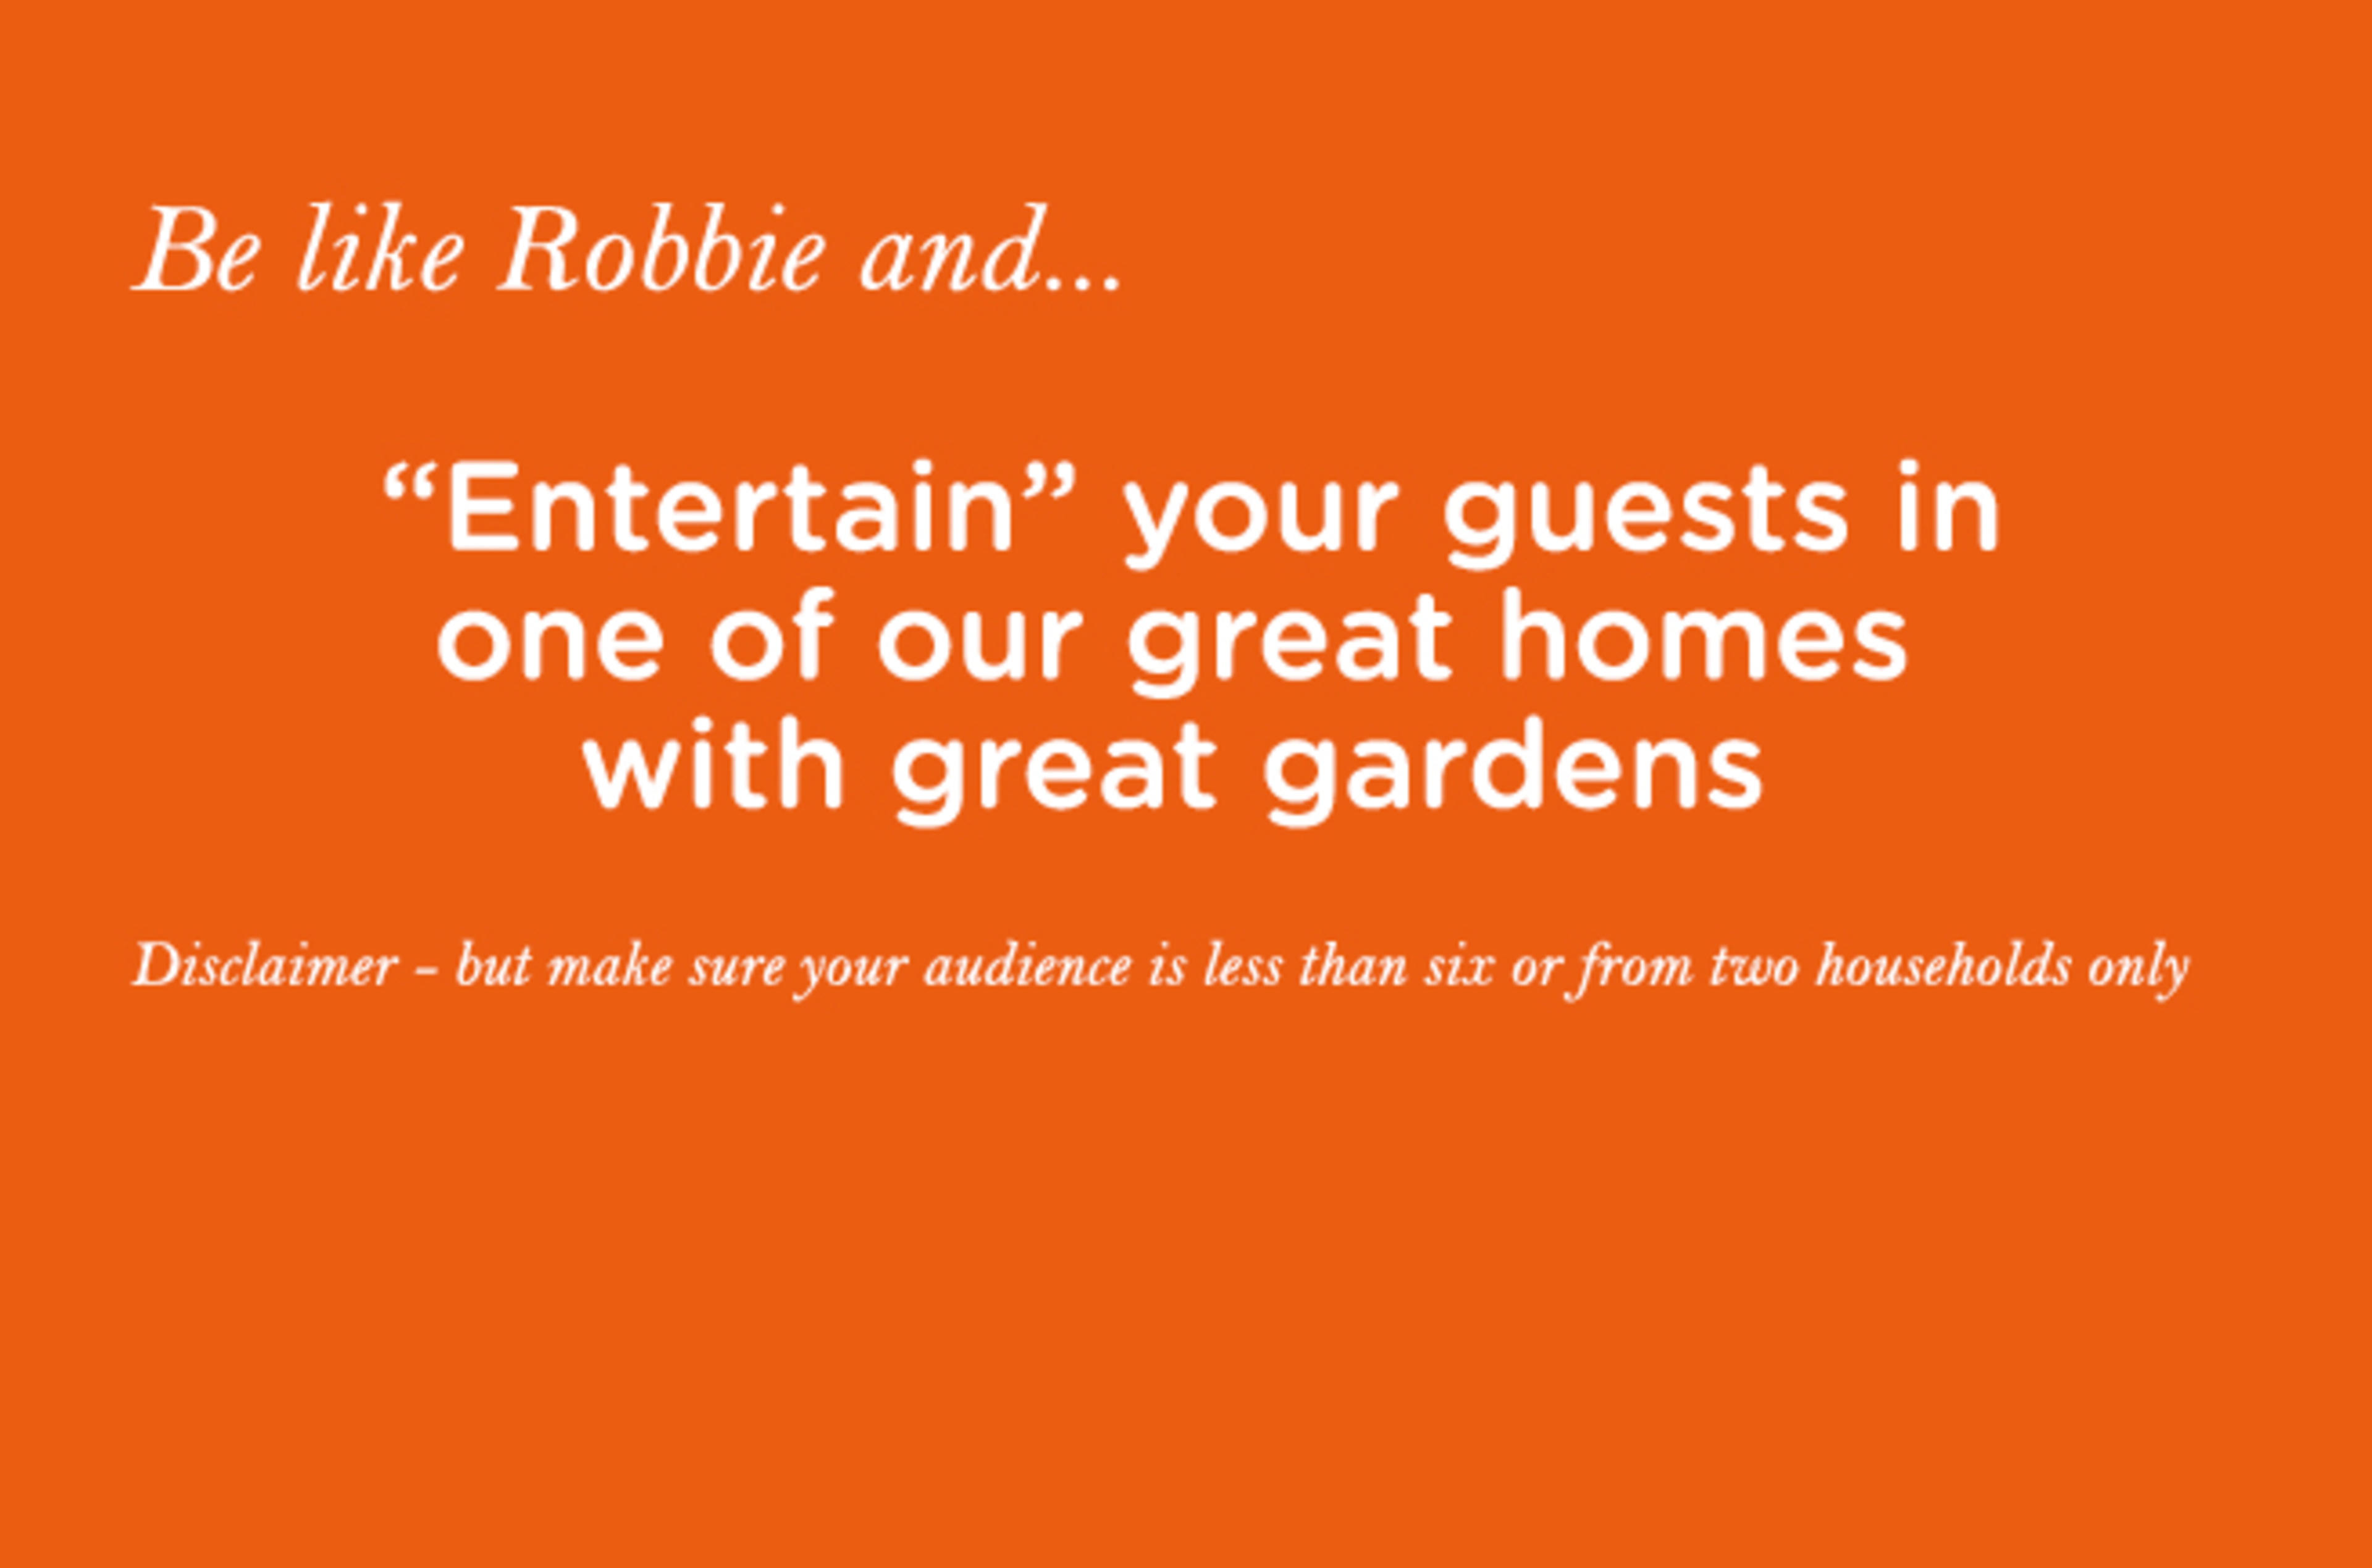 Offers - Entertain you